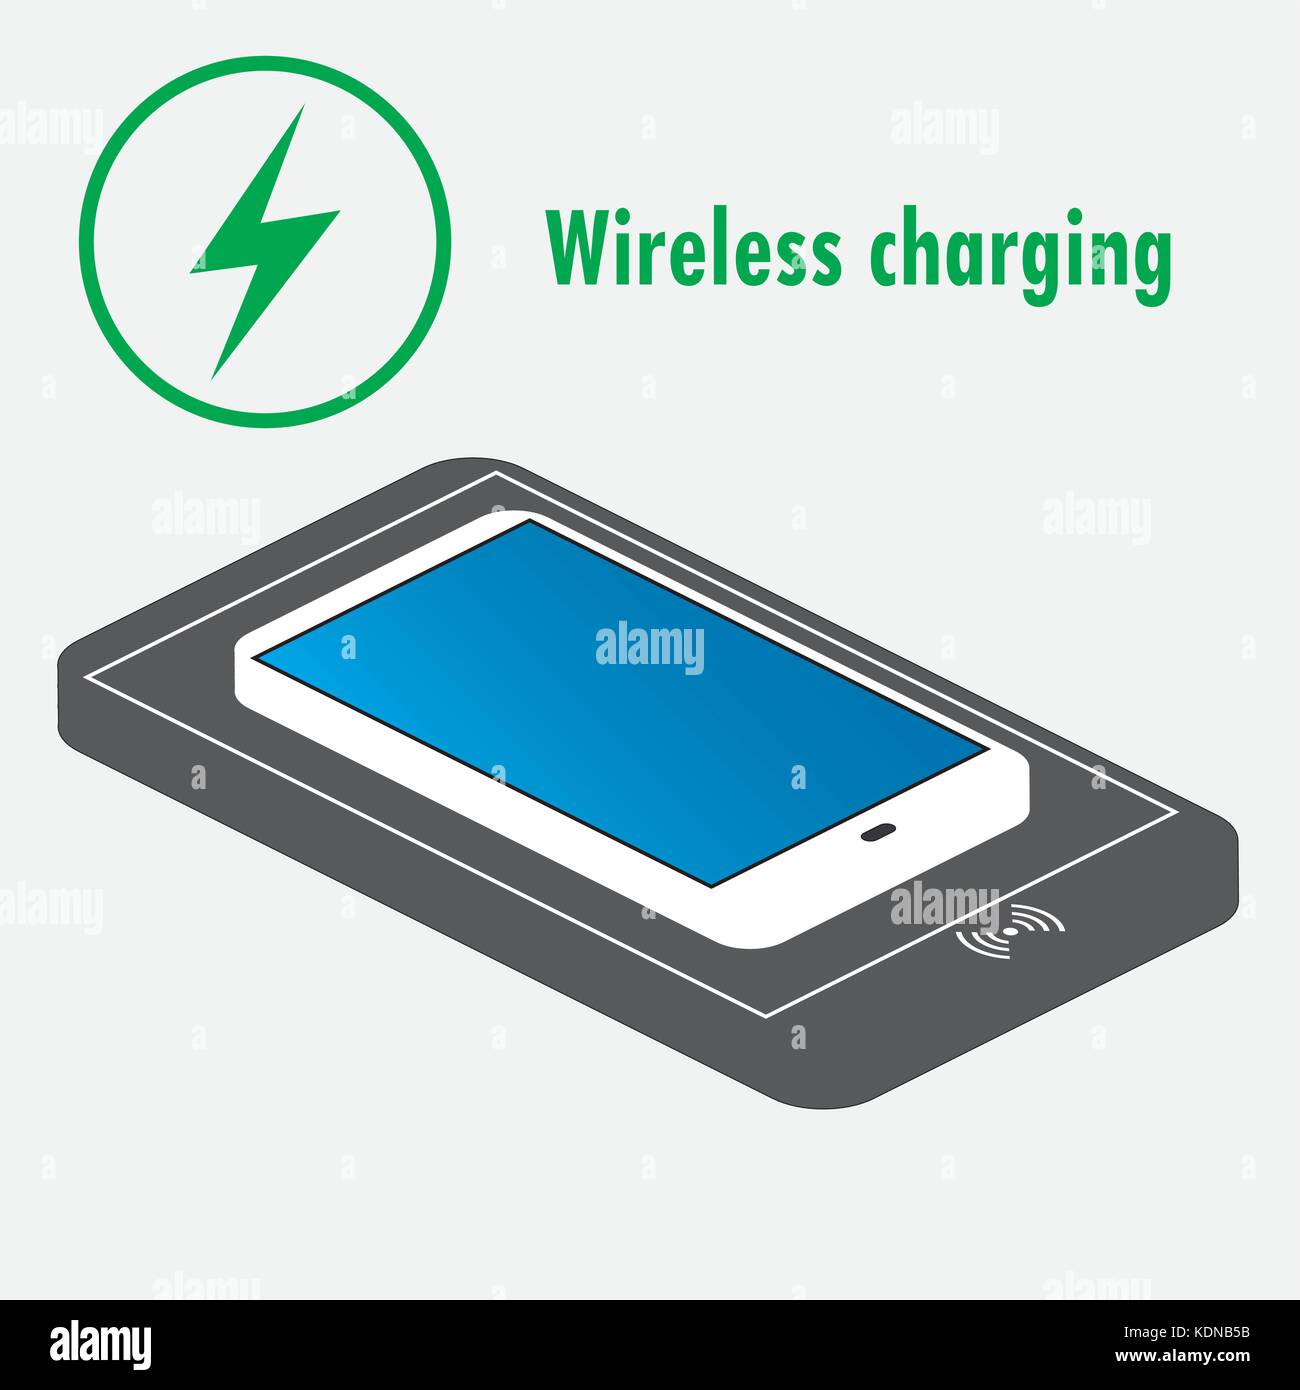 mobile phone charging station stock photos mobile phone charging station stock images alamy. Black Bedroom Furniture Sets. Home Design Ideas